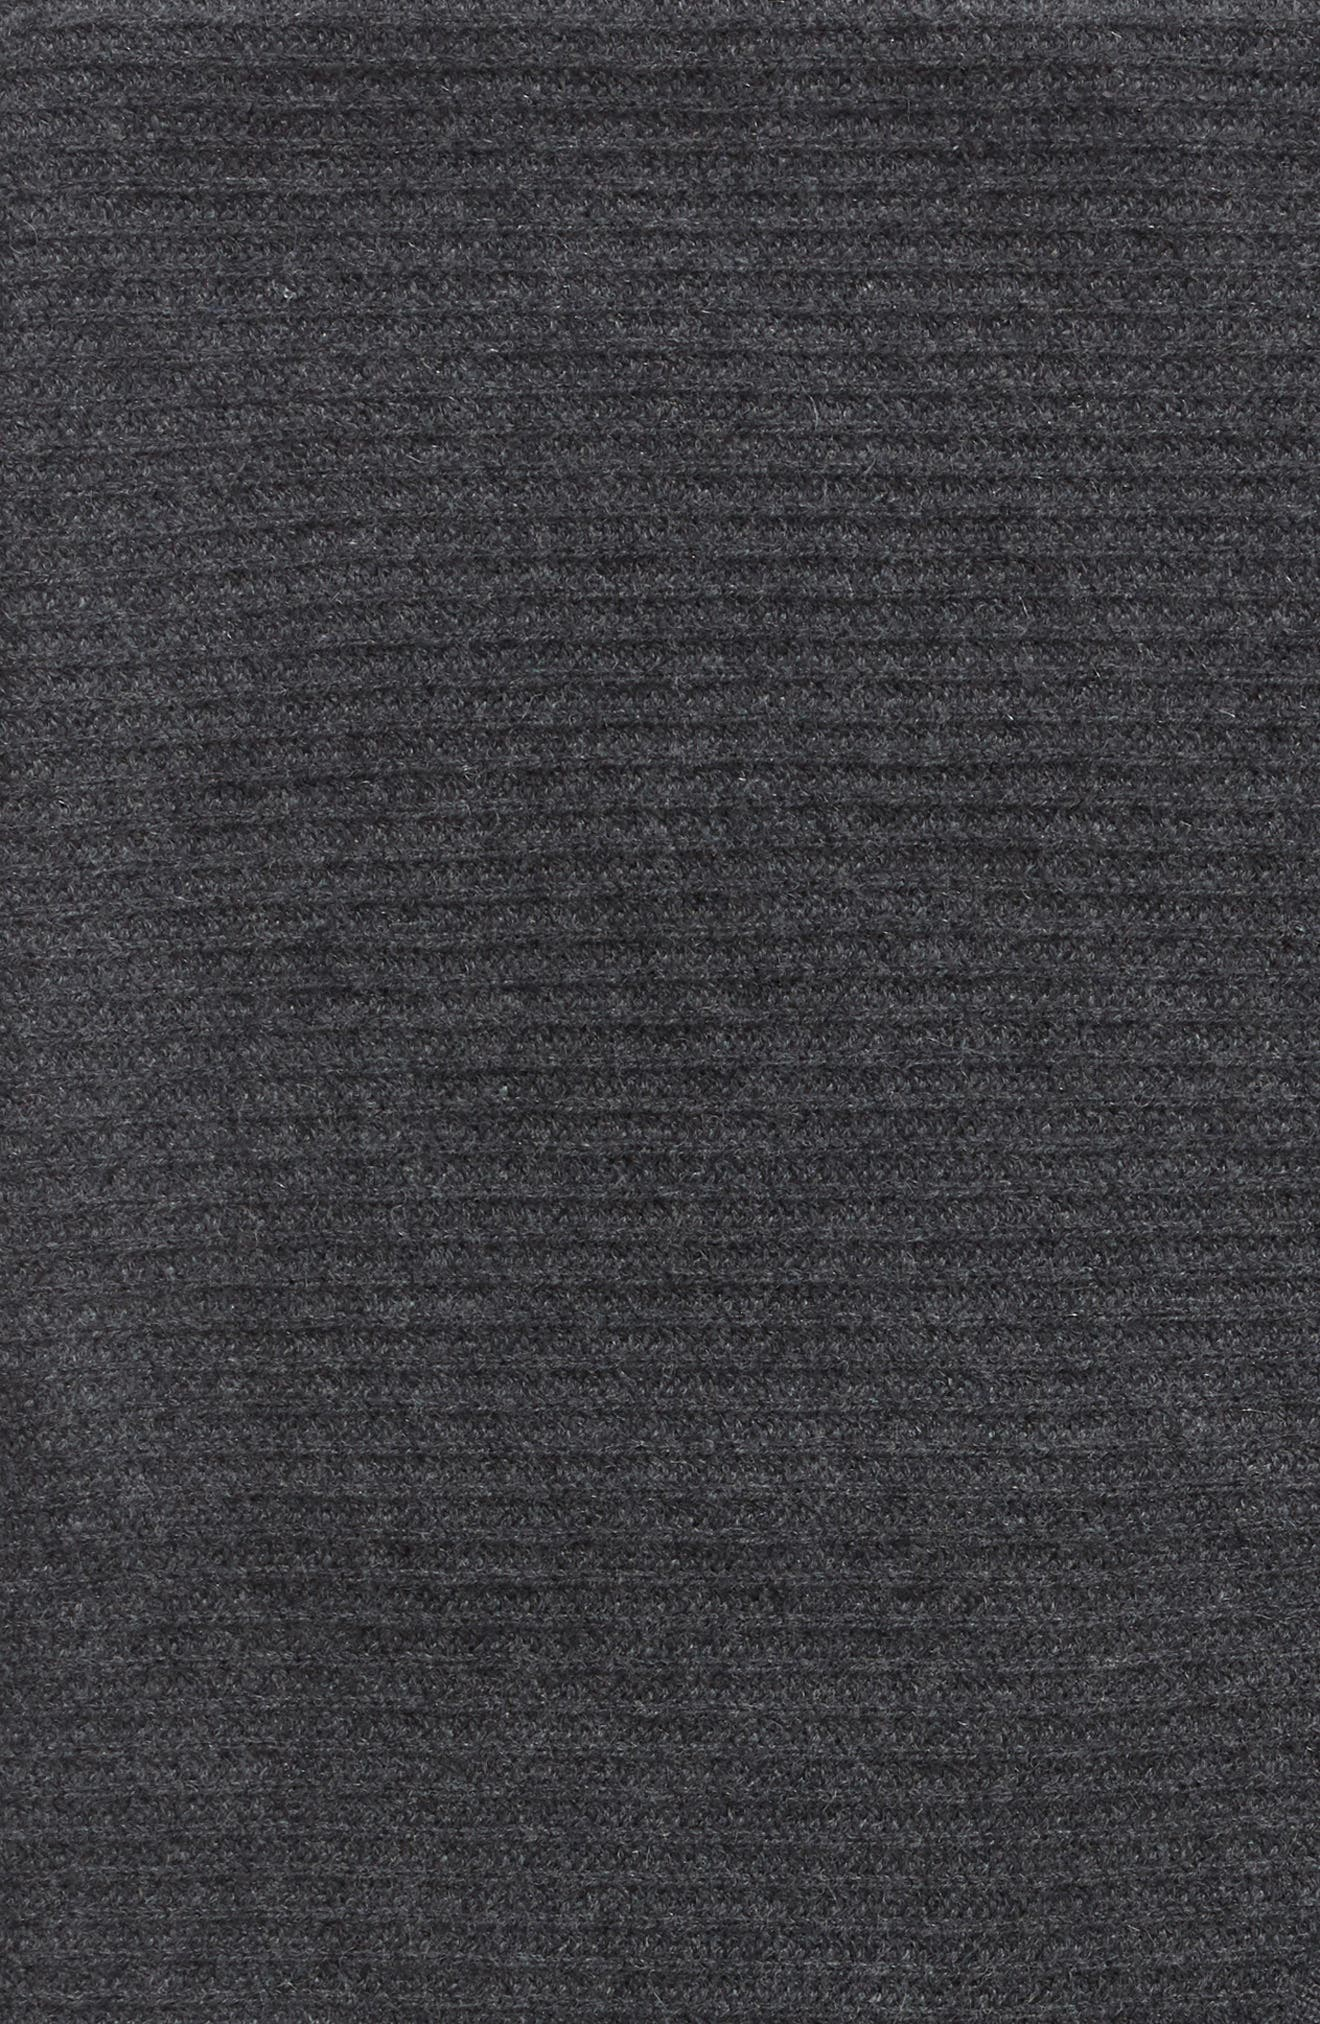 NORDSTROM SIGNATURE, Ribbed Cashmere Throw, Alternate thumbnail 2, color, CHARCOAL HEATHER